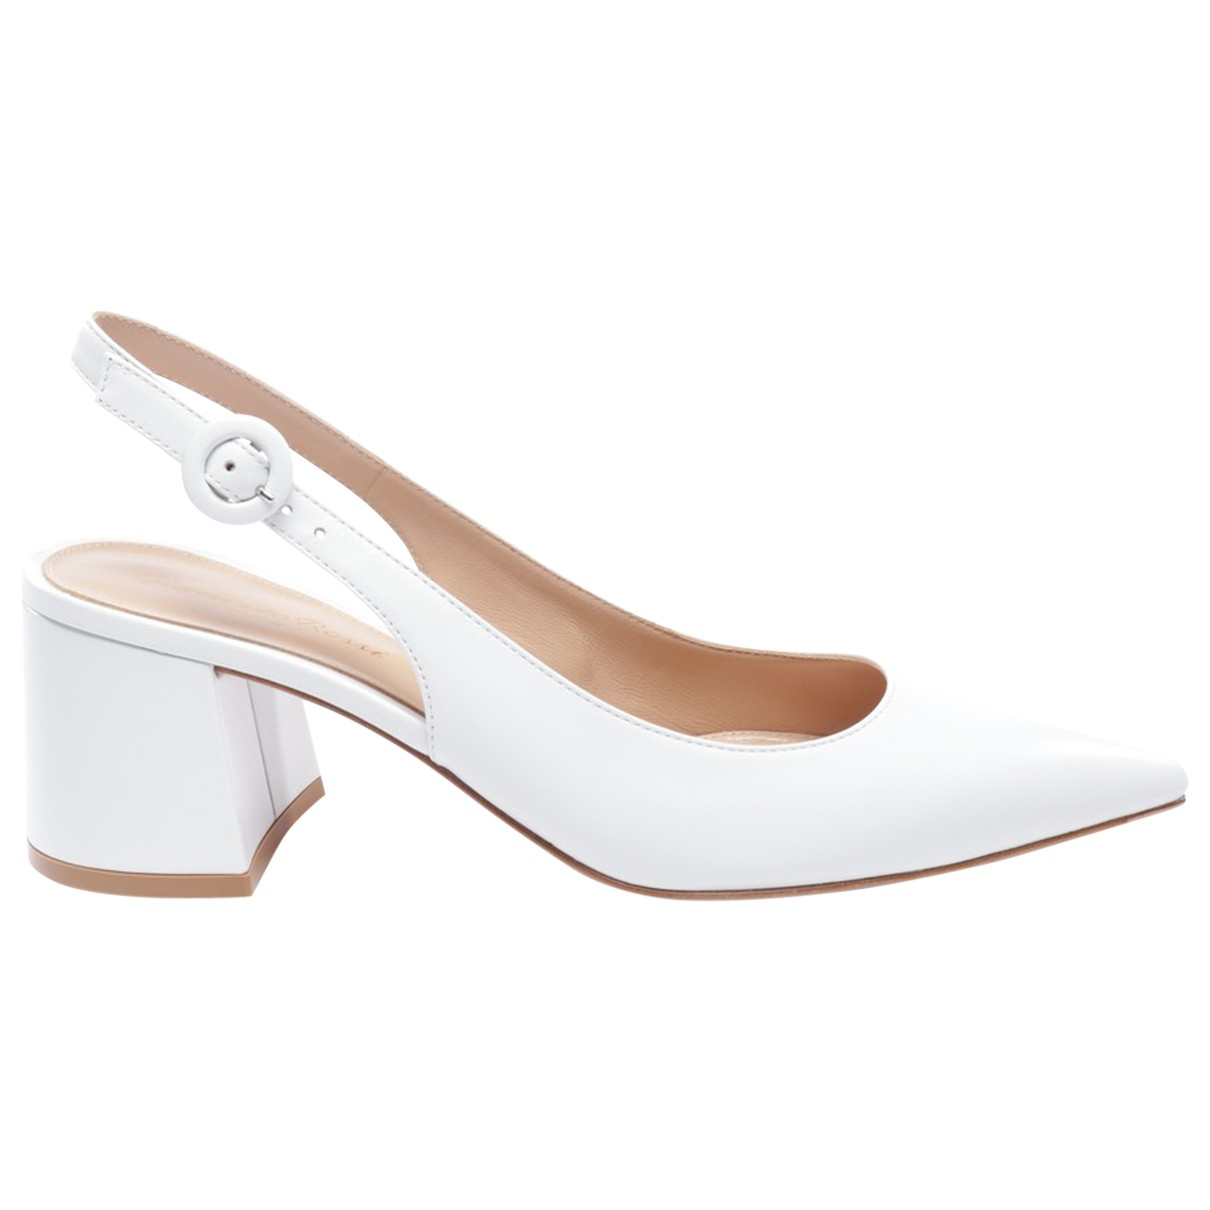 Gianvito Rossi \N White Leather Heels for Women 37 EU